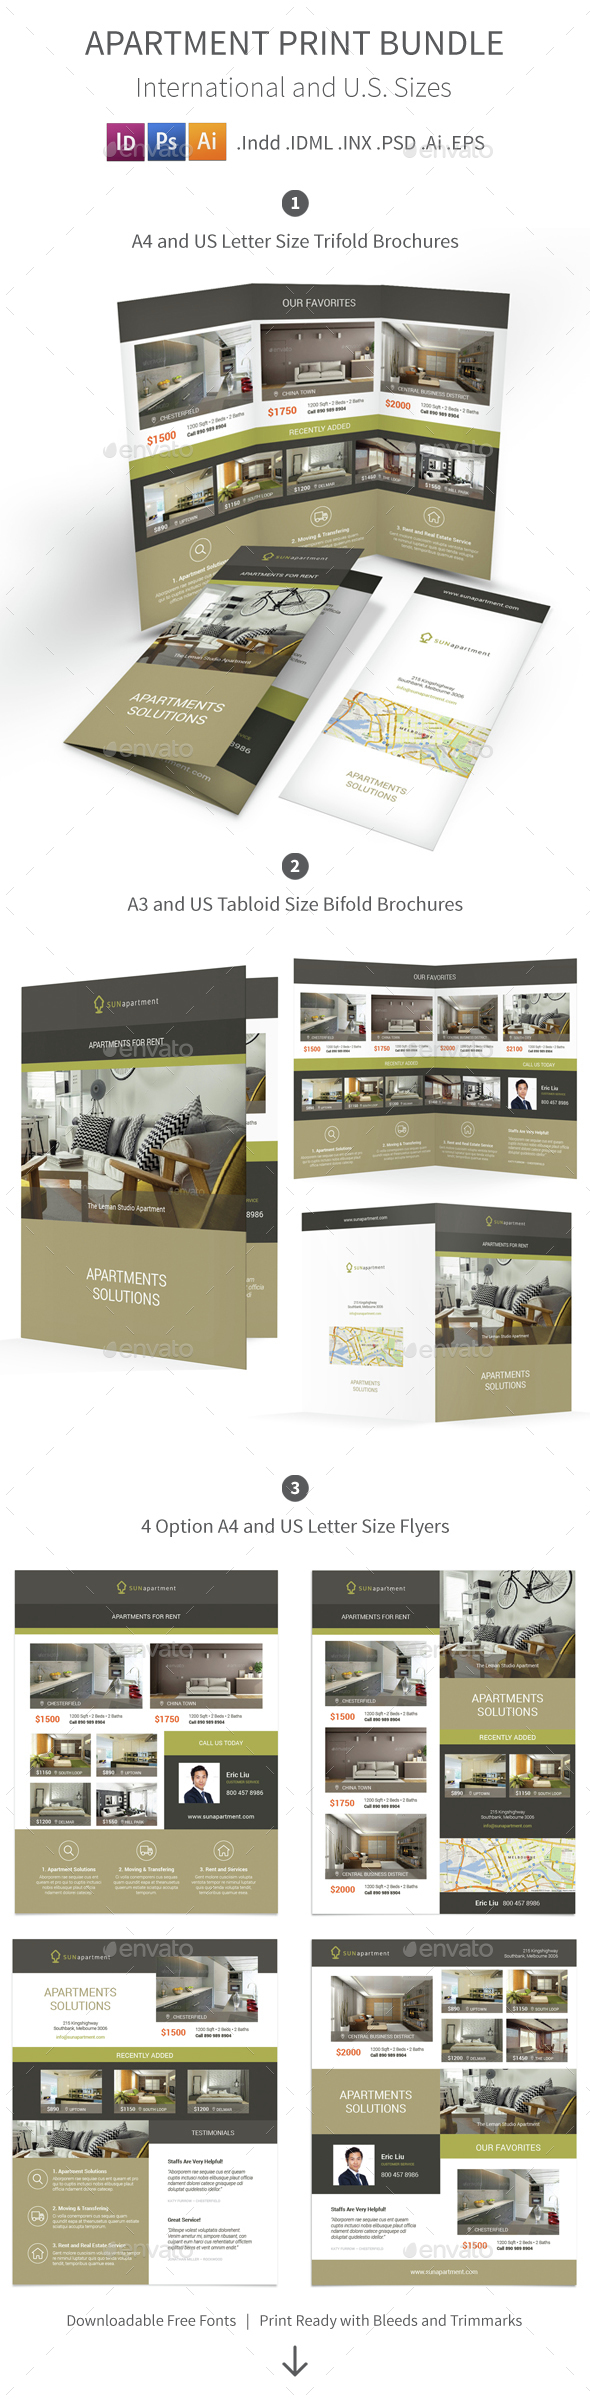 Apartment For Rent Print Bundle 2 - Informational Brochures